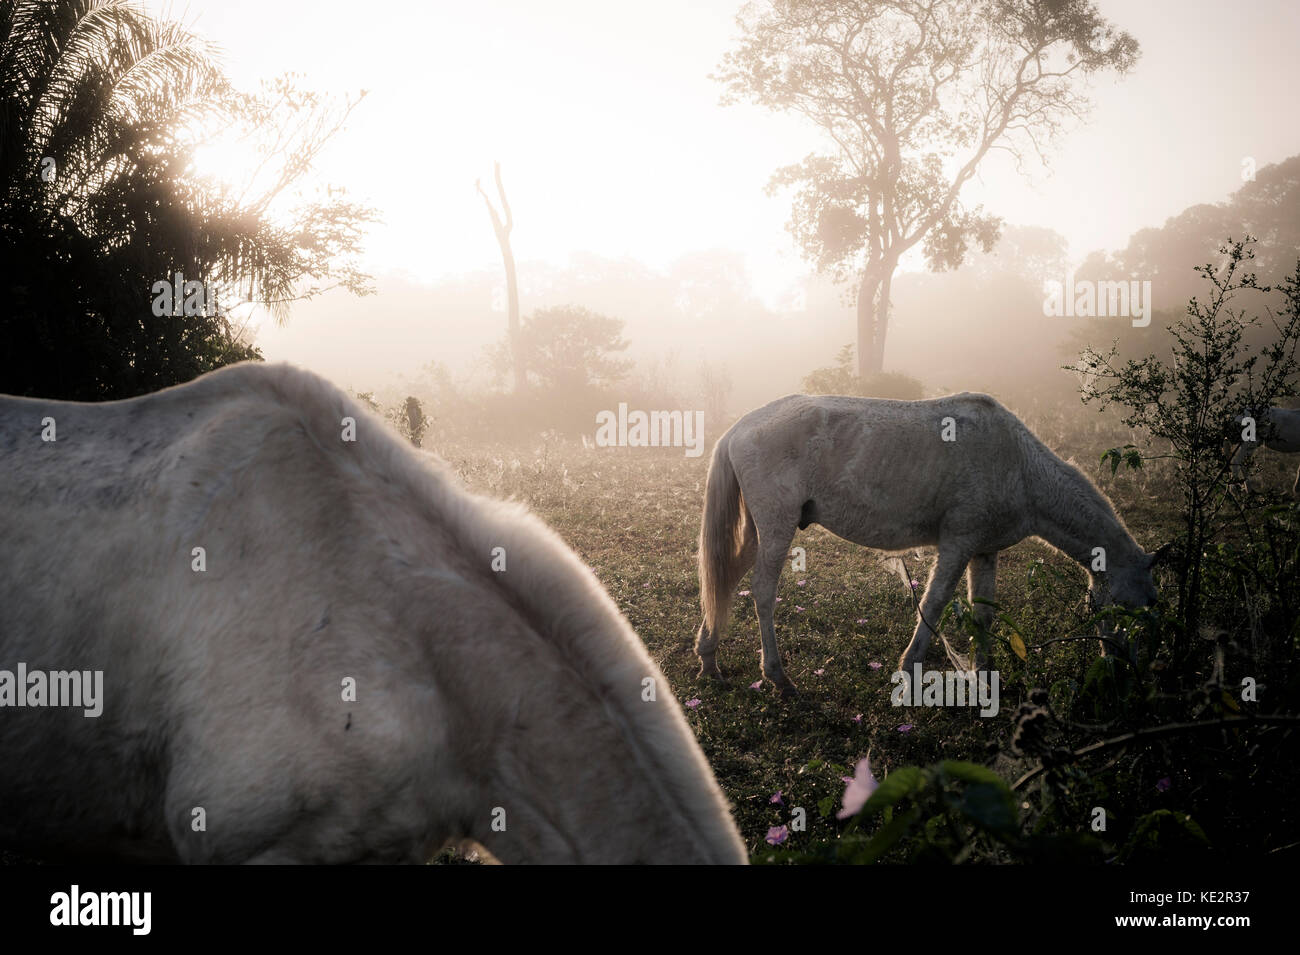 Two horses in the Pantanal during a misty morning - Stock Image